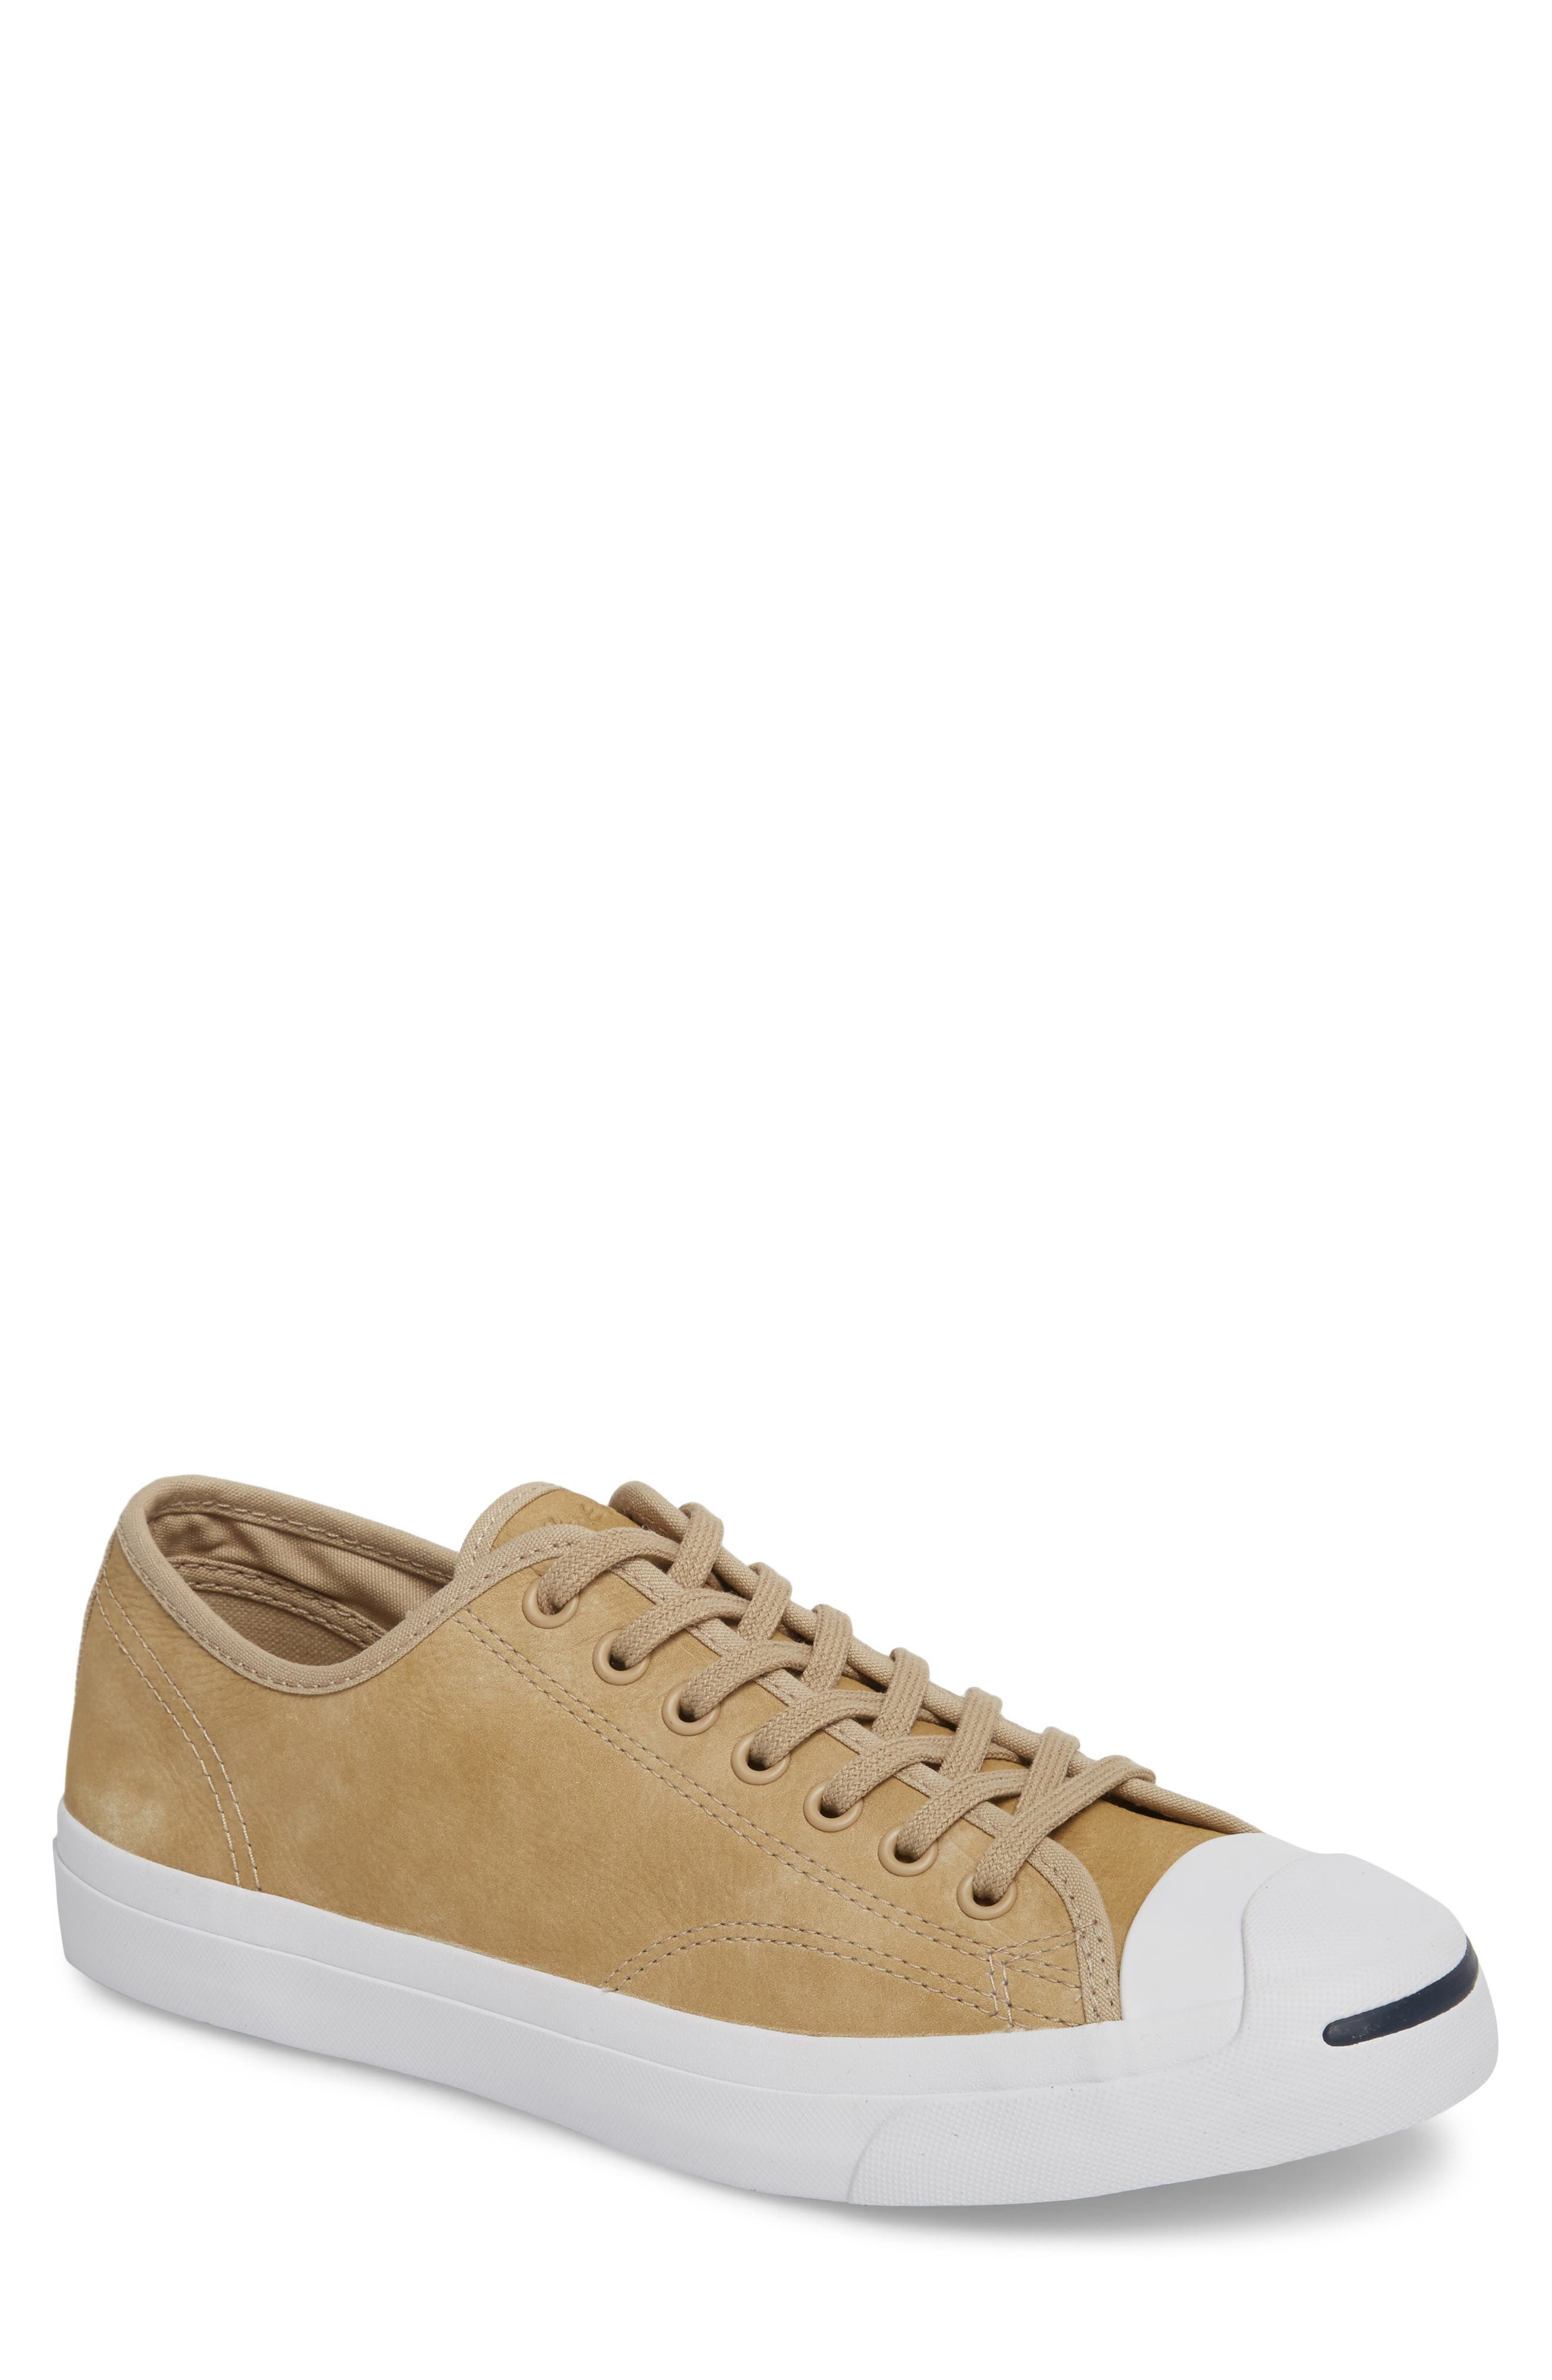 Alternate Image 1 Selected - Converse 'Jack Purcell - Jack' Sneaker (Men)